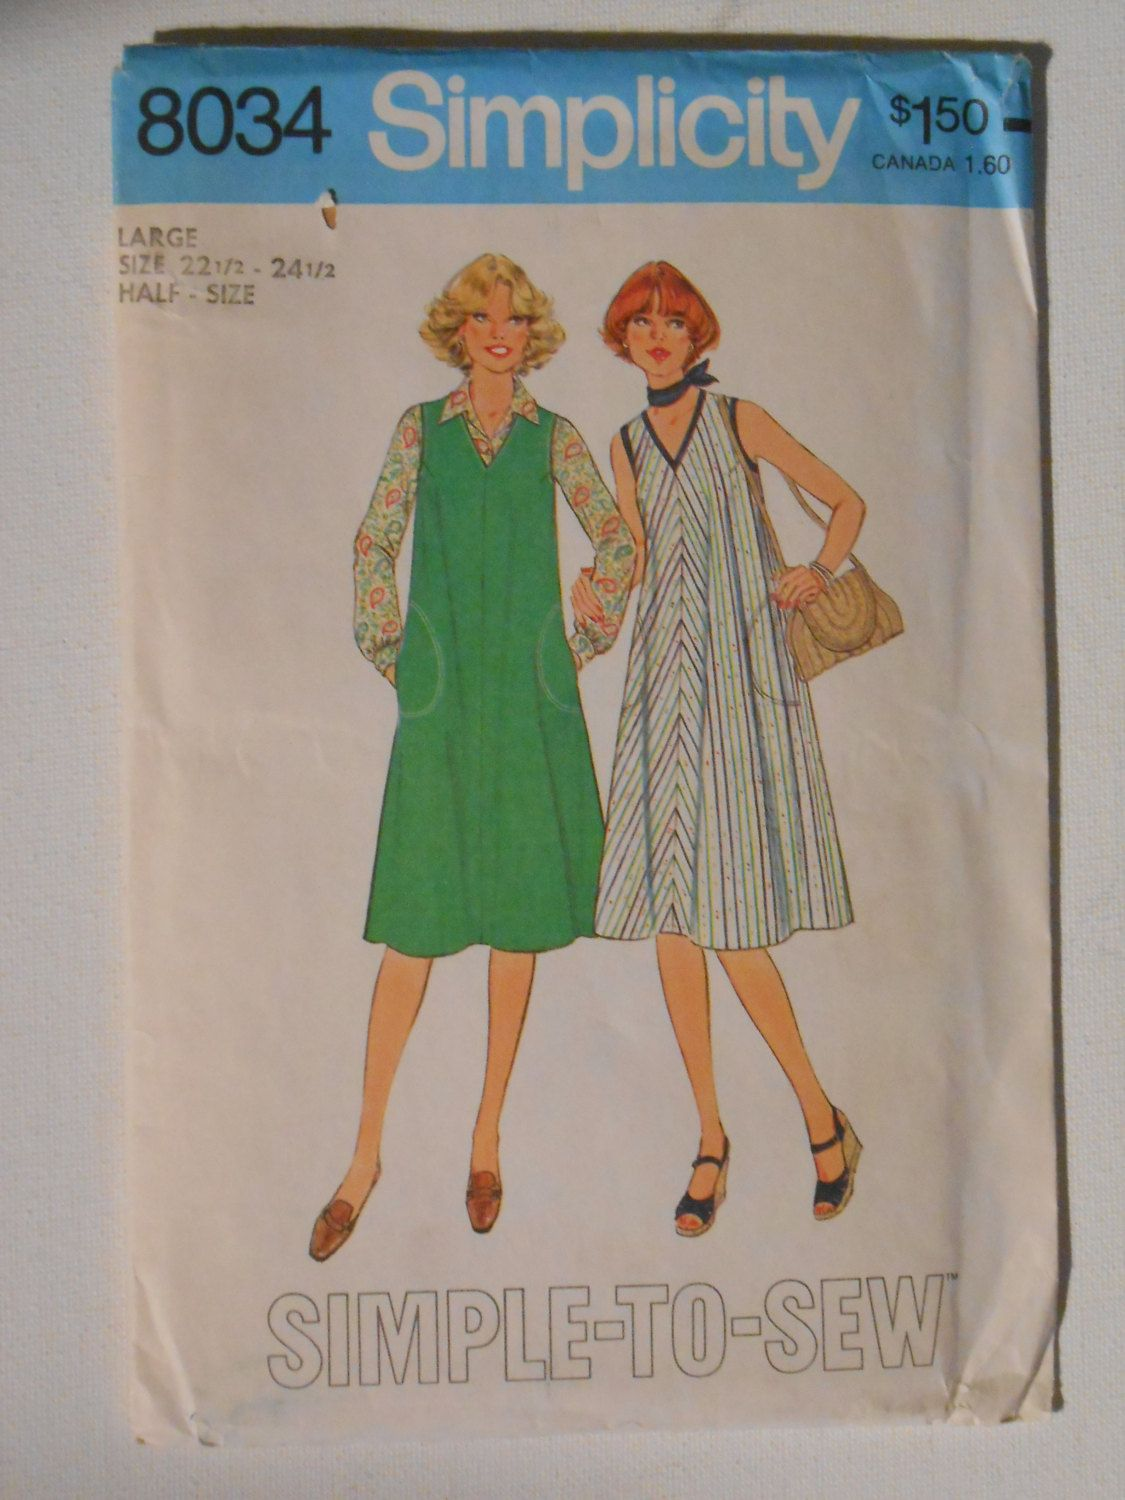 Vintage 70s Simple to Sew Dress or Jumper Pattern Simplicity 8034 Size 22 1/2 24 1/2 Large Bust 45 47 UNCUT by lisaanne1960 on Etsy